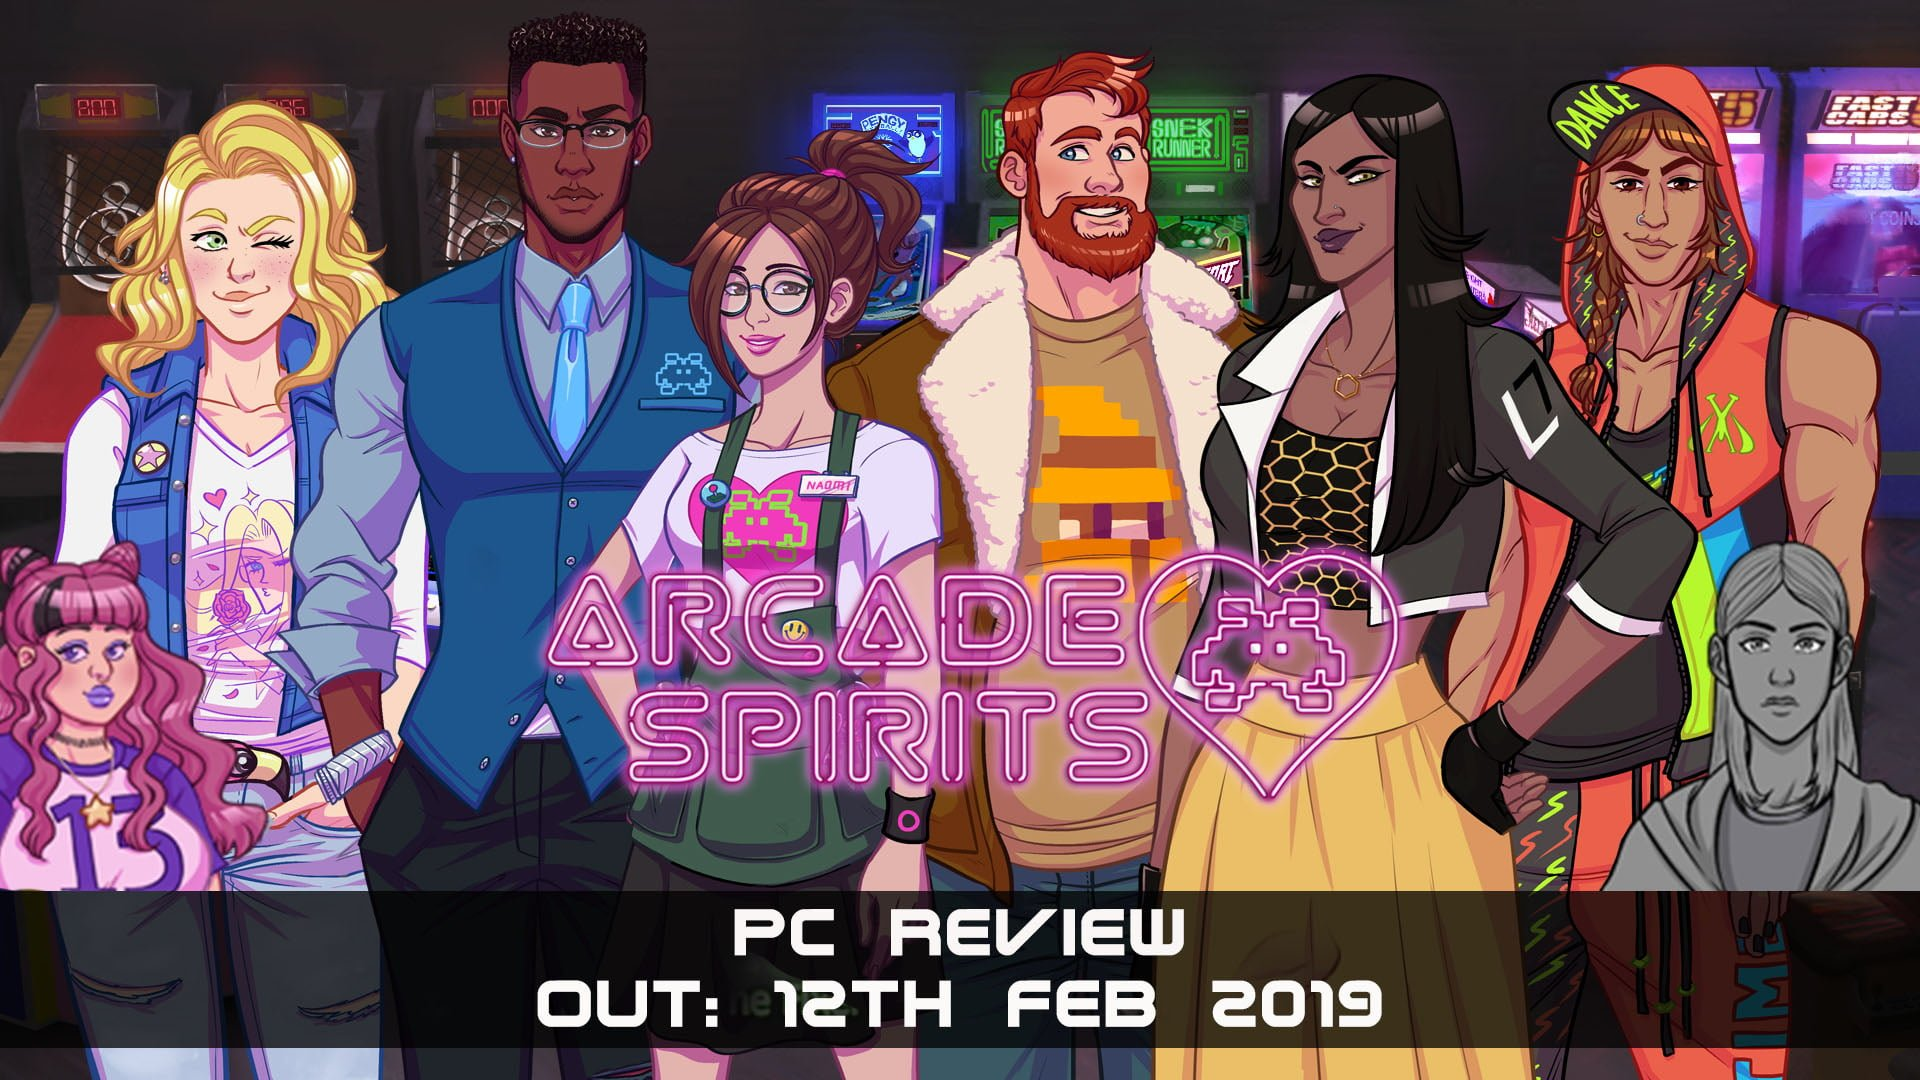 Arcade Spirits (PC) Review